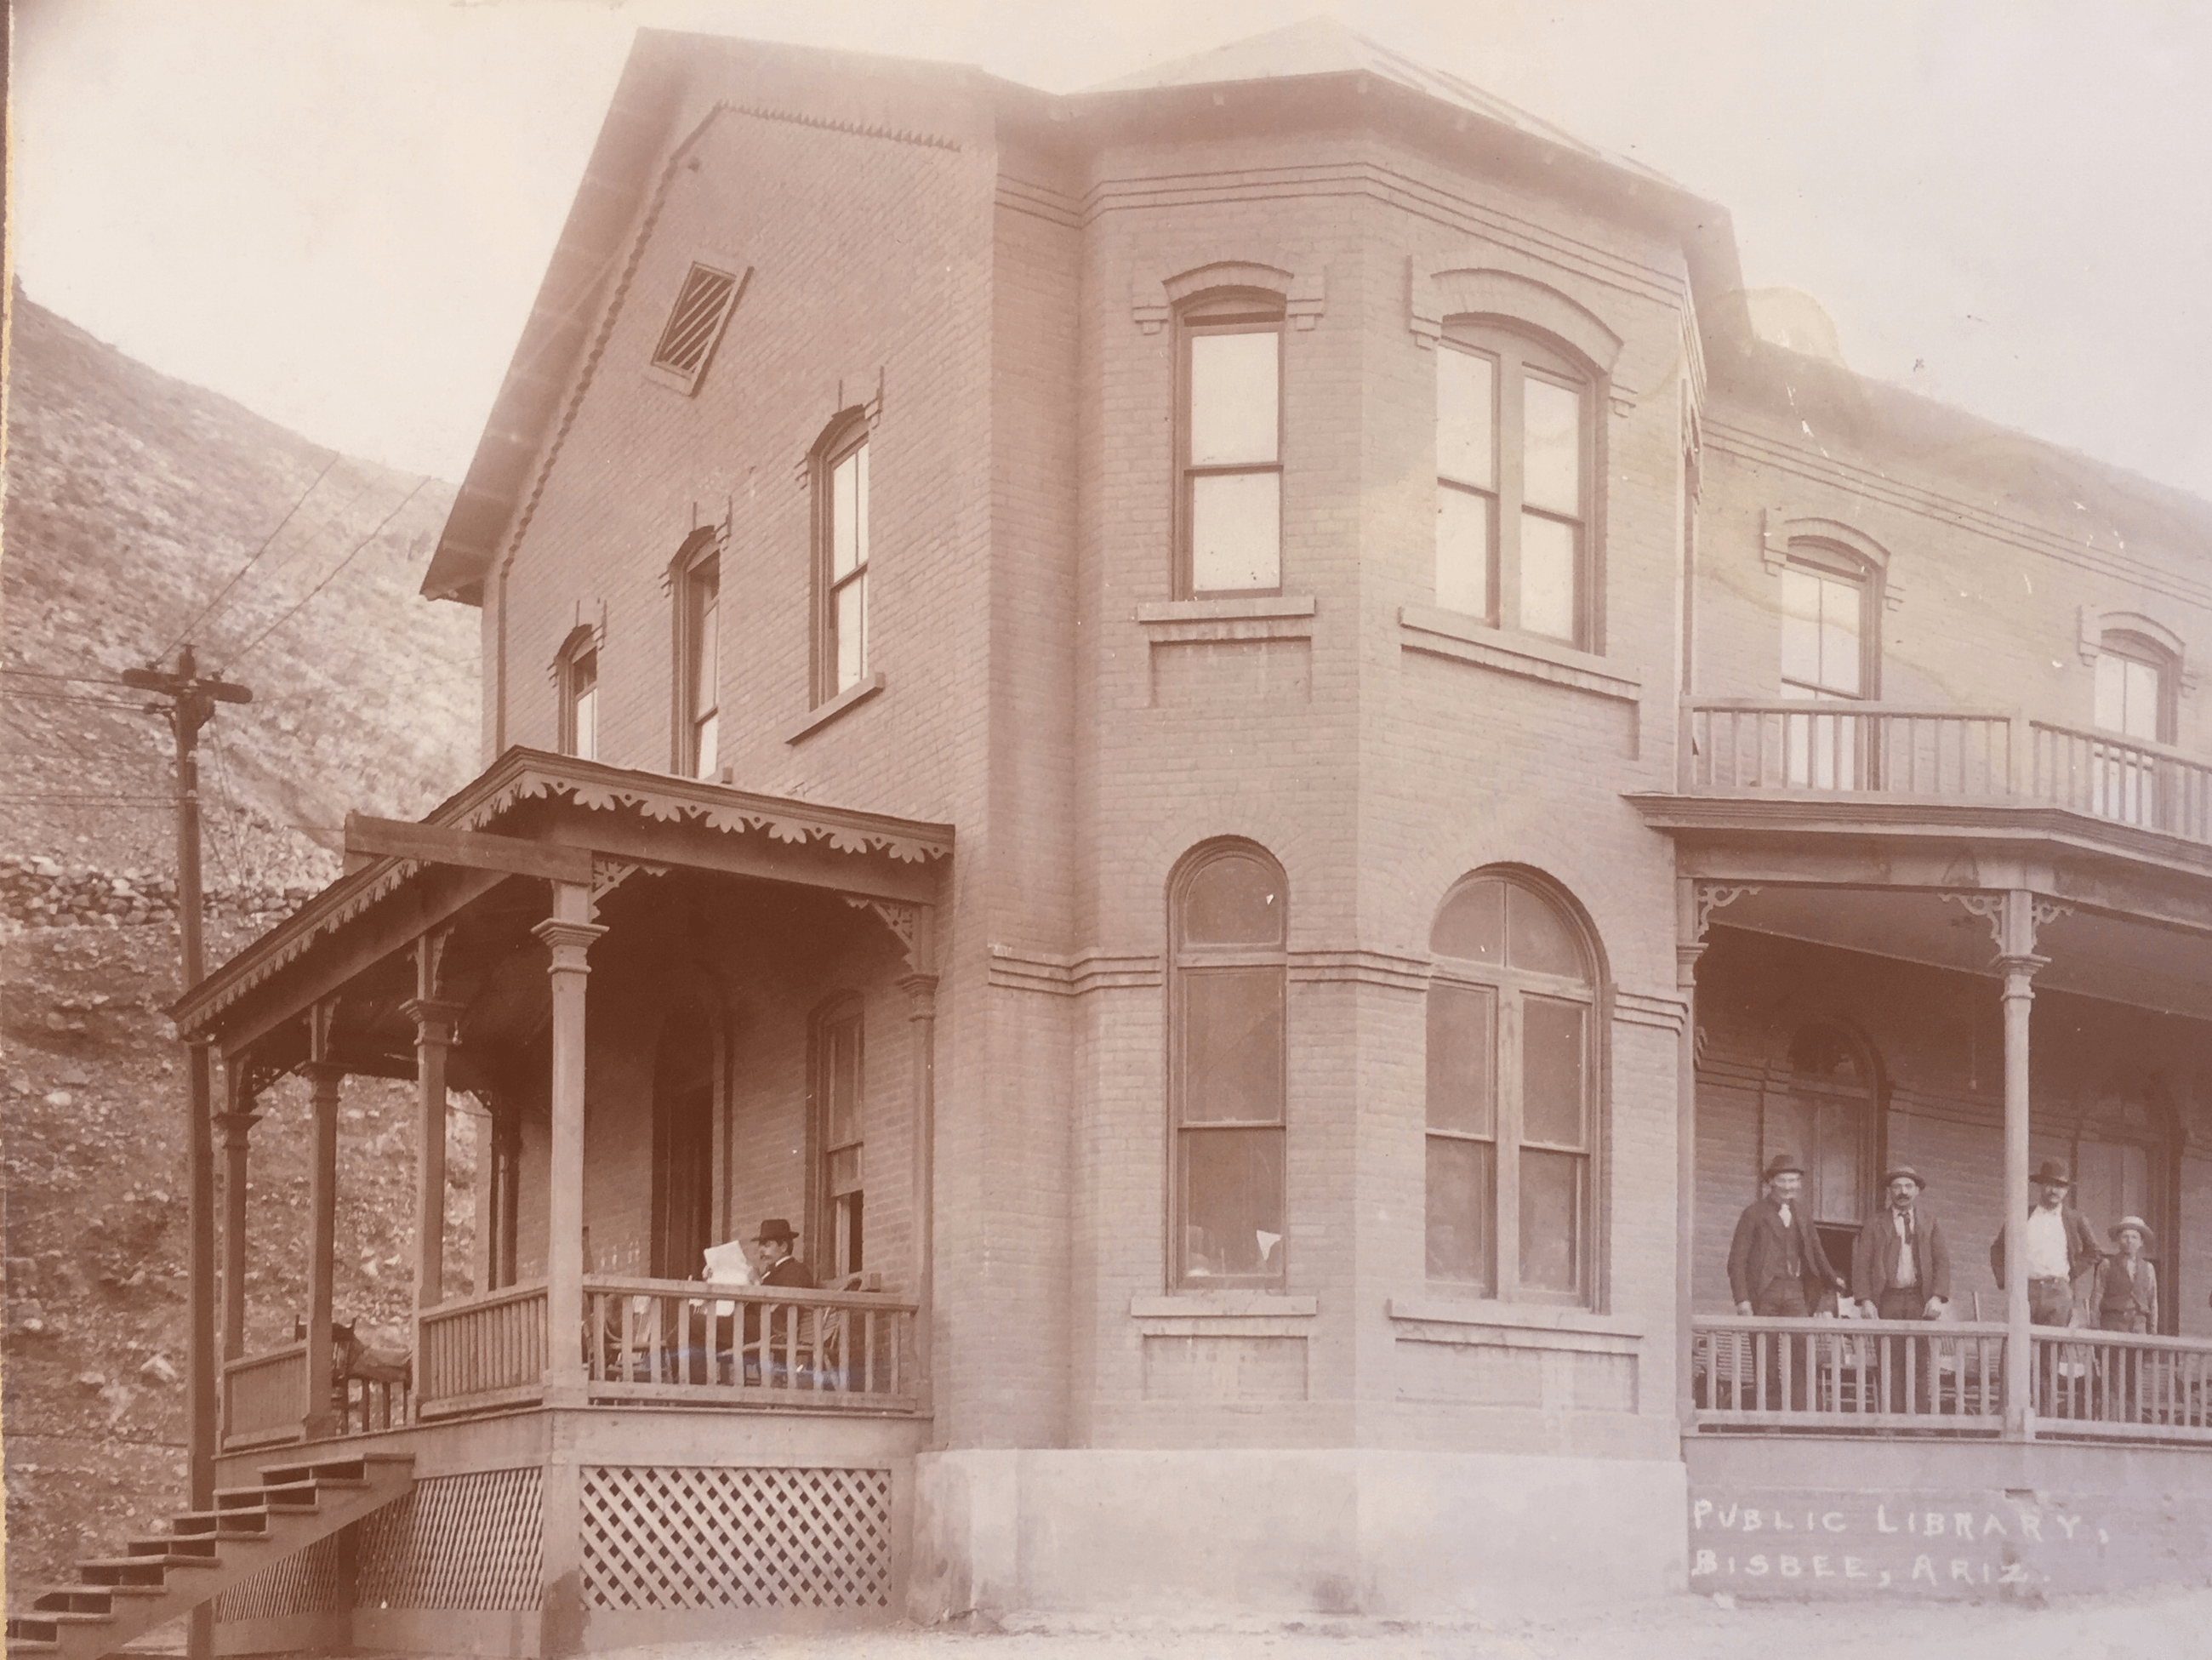 The first library of Bisbee circa 1885. It was across the street where the current one stands. This one burn done in the 1888 fire. Photo courtesty of the Bisbee Mining and Historical Museum